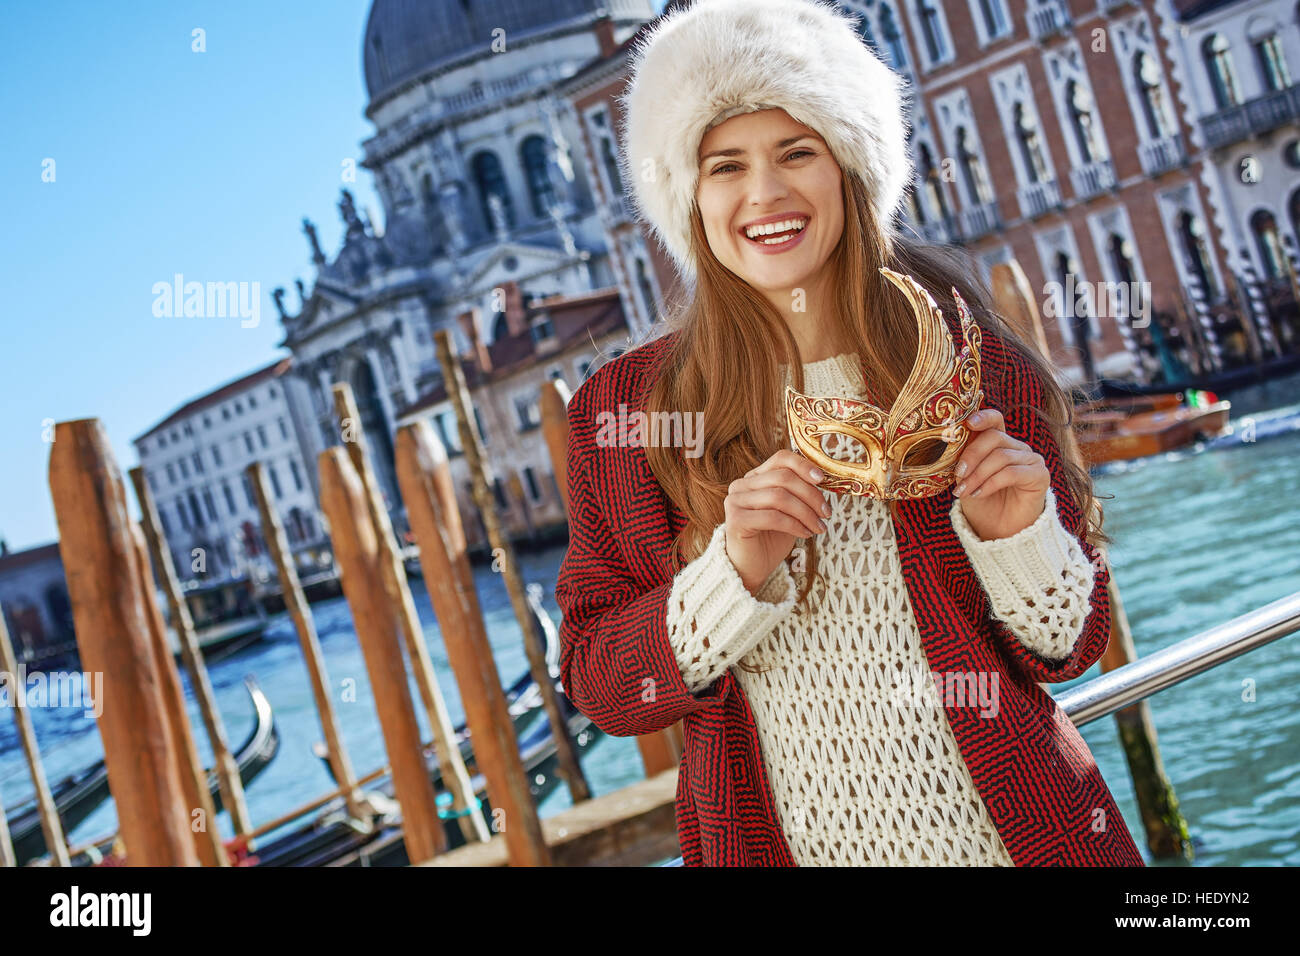 aba1cc0f838 Another world vacation. smiling modern fashion-monger in fur hat in Venice